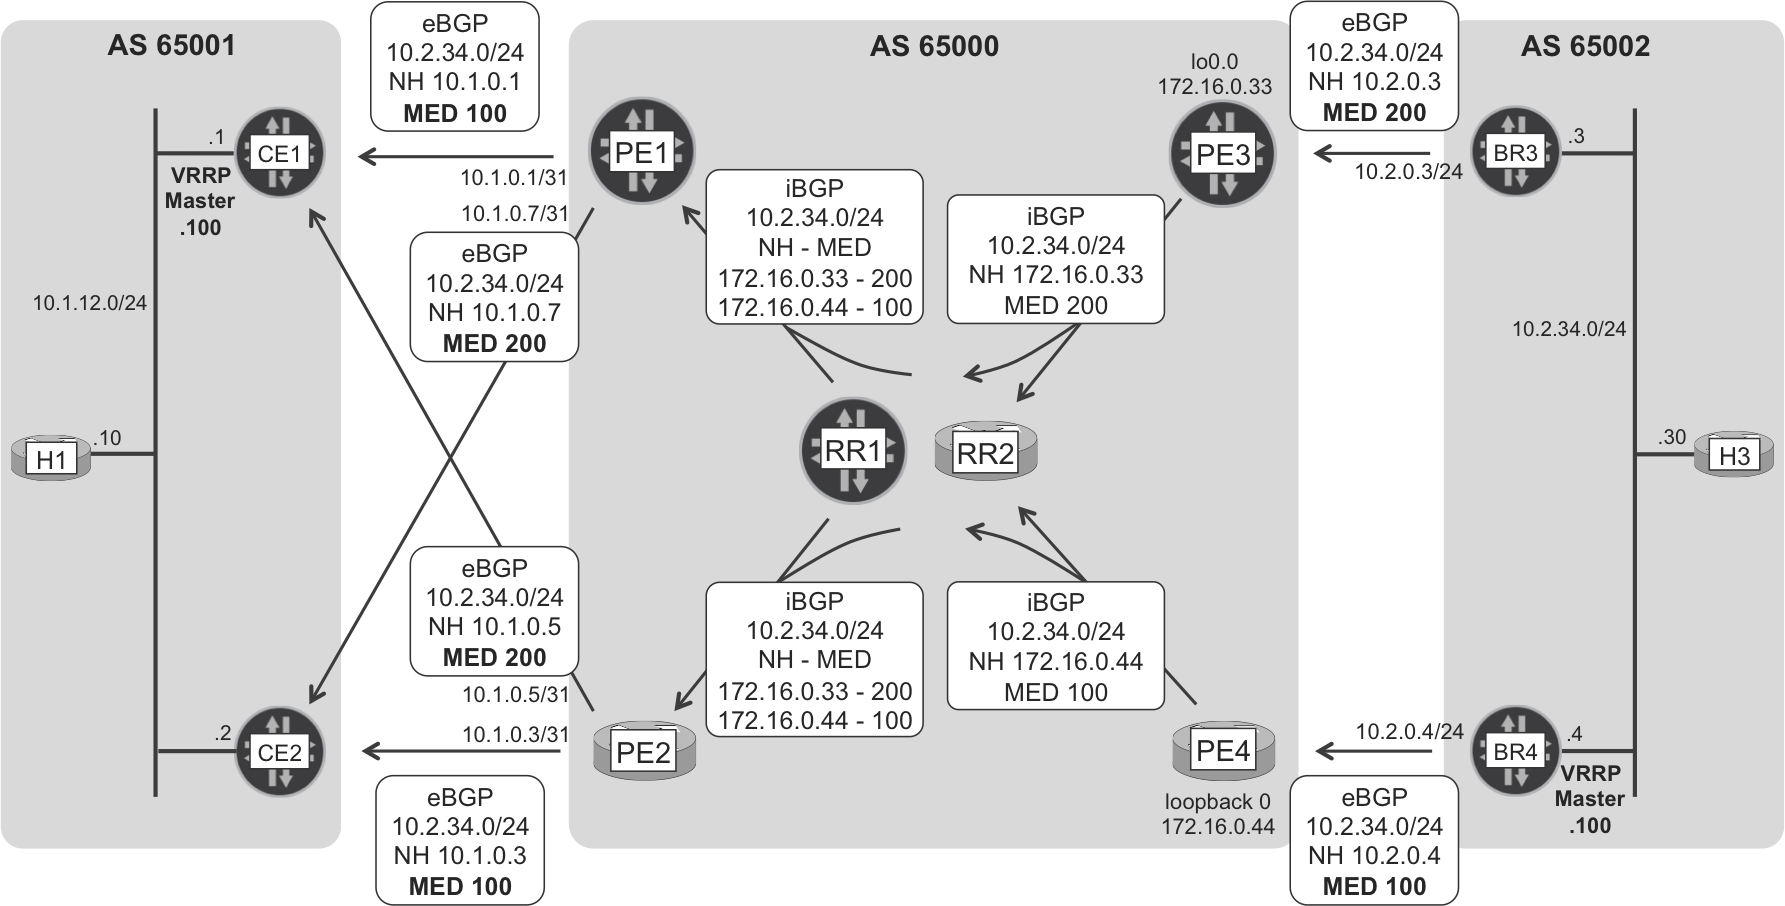 Internet eBGP and iBGP route signaling—H3's subnet